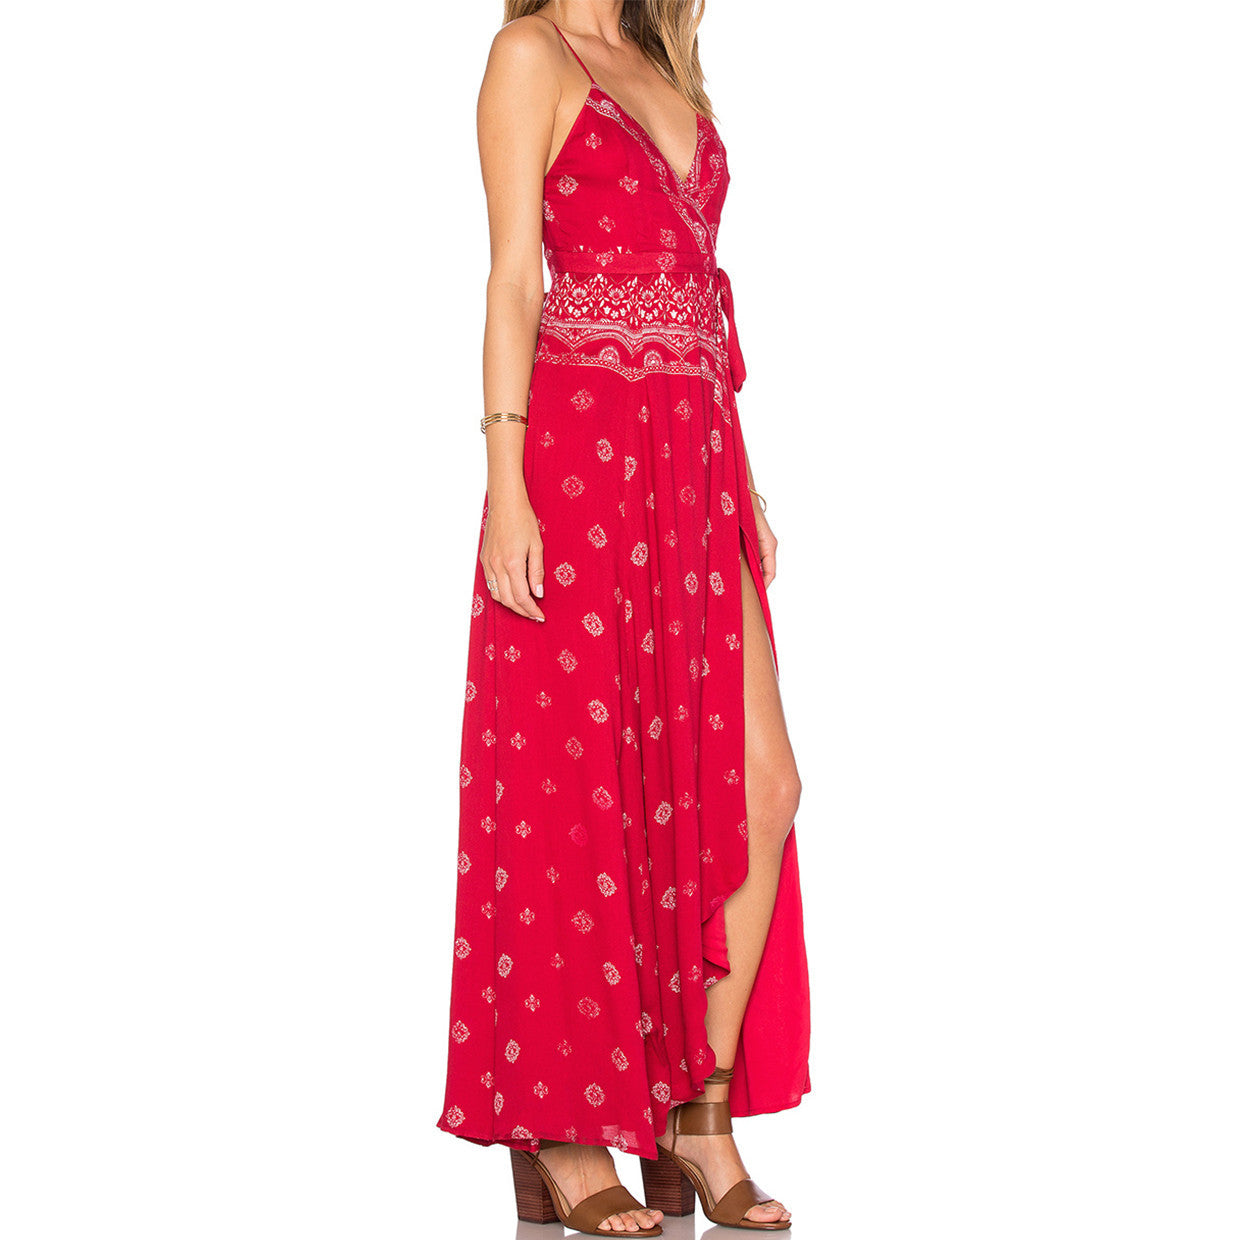 Fuego Maxi Dress in Red The Jetset Diaries